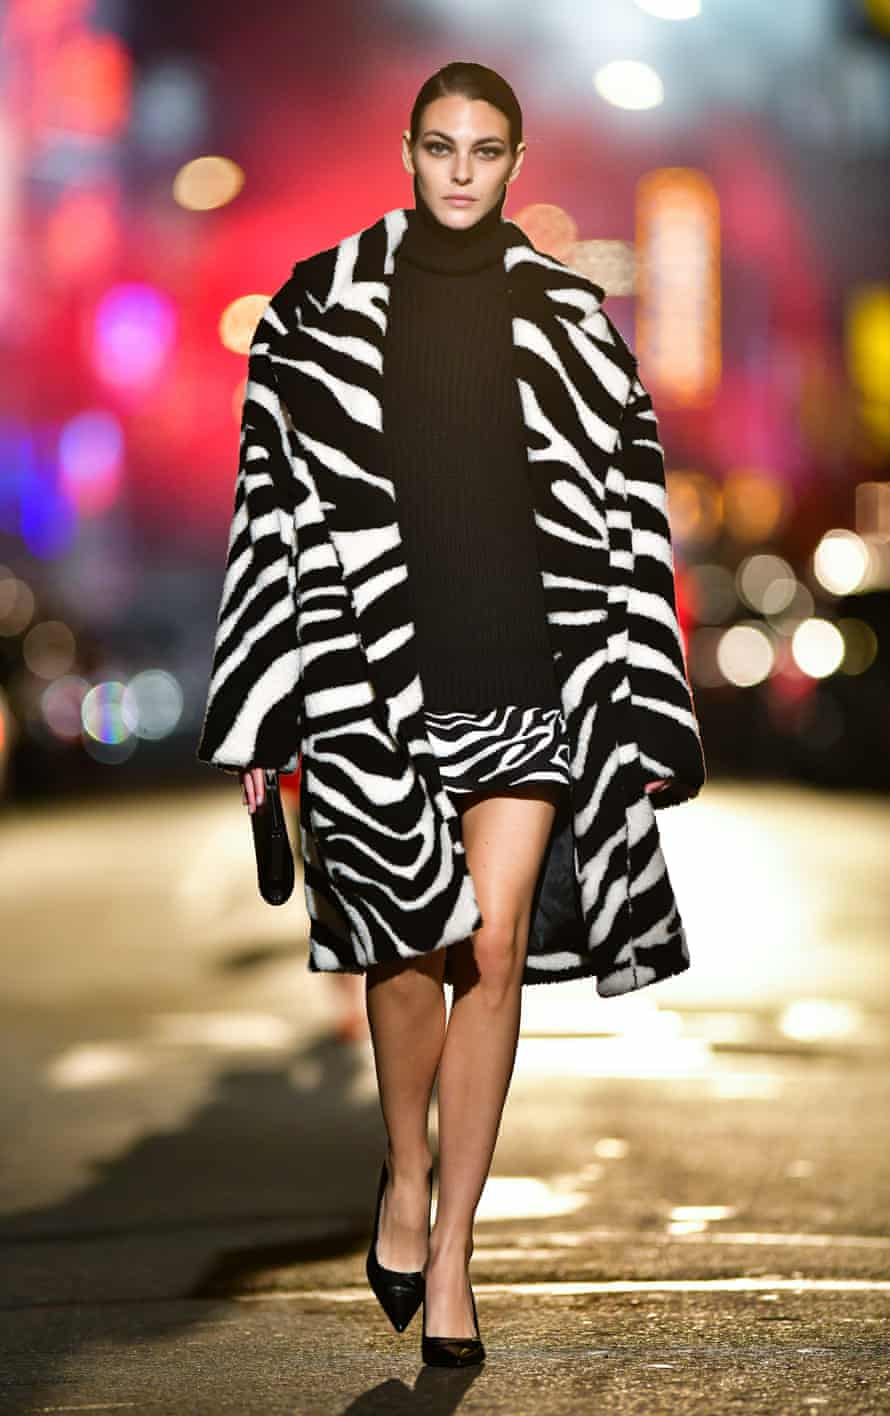 Model Vittoria Ceretti walks along 46th Street during the Michael Kors show in Times Square, New York, in April 2021.